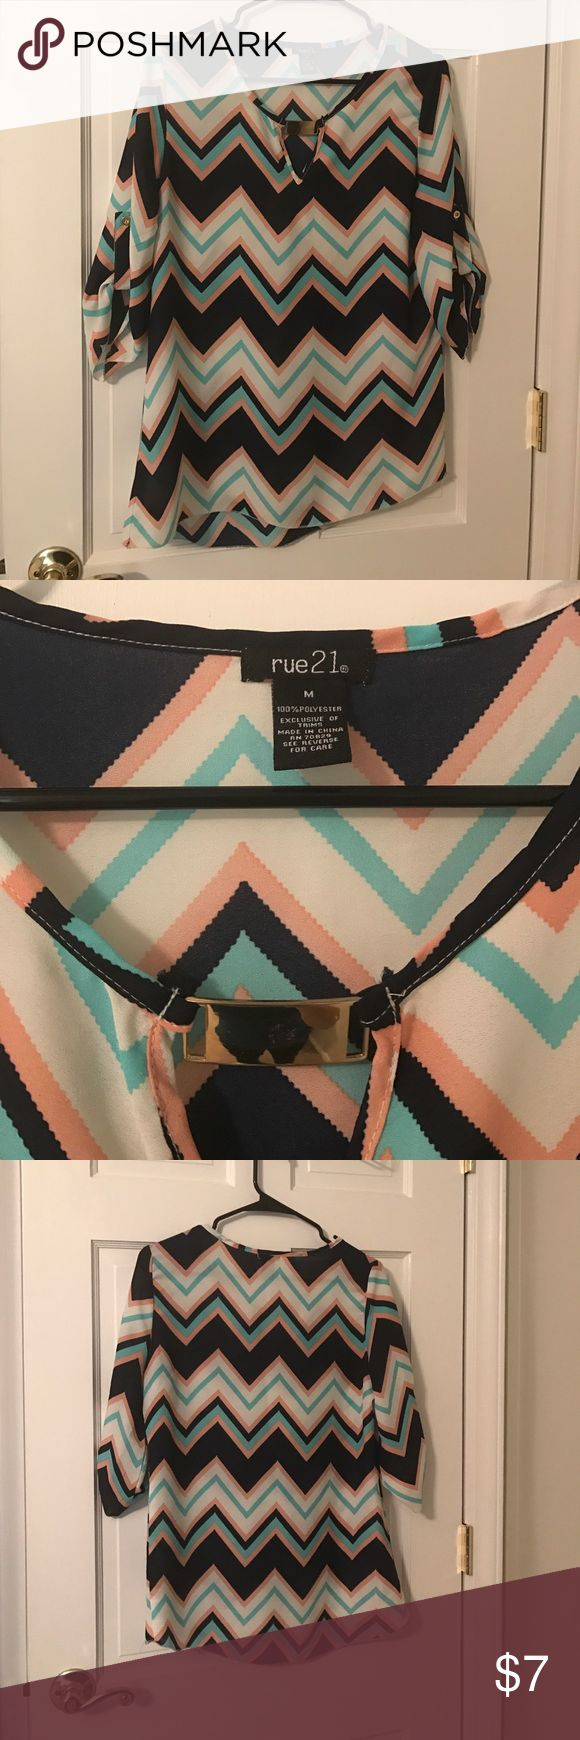 Rue 21 chevron top Chevron top from Rue 21.  3/4 sleeves with gold accent on the front, gold buttons on the sleeves.  Super cute with leggings and for the office!  Colors are navy blue, coral, real and white. Rue 21 Tops Blouses